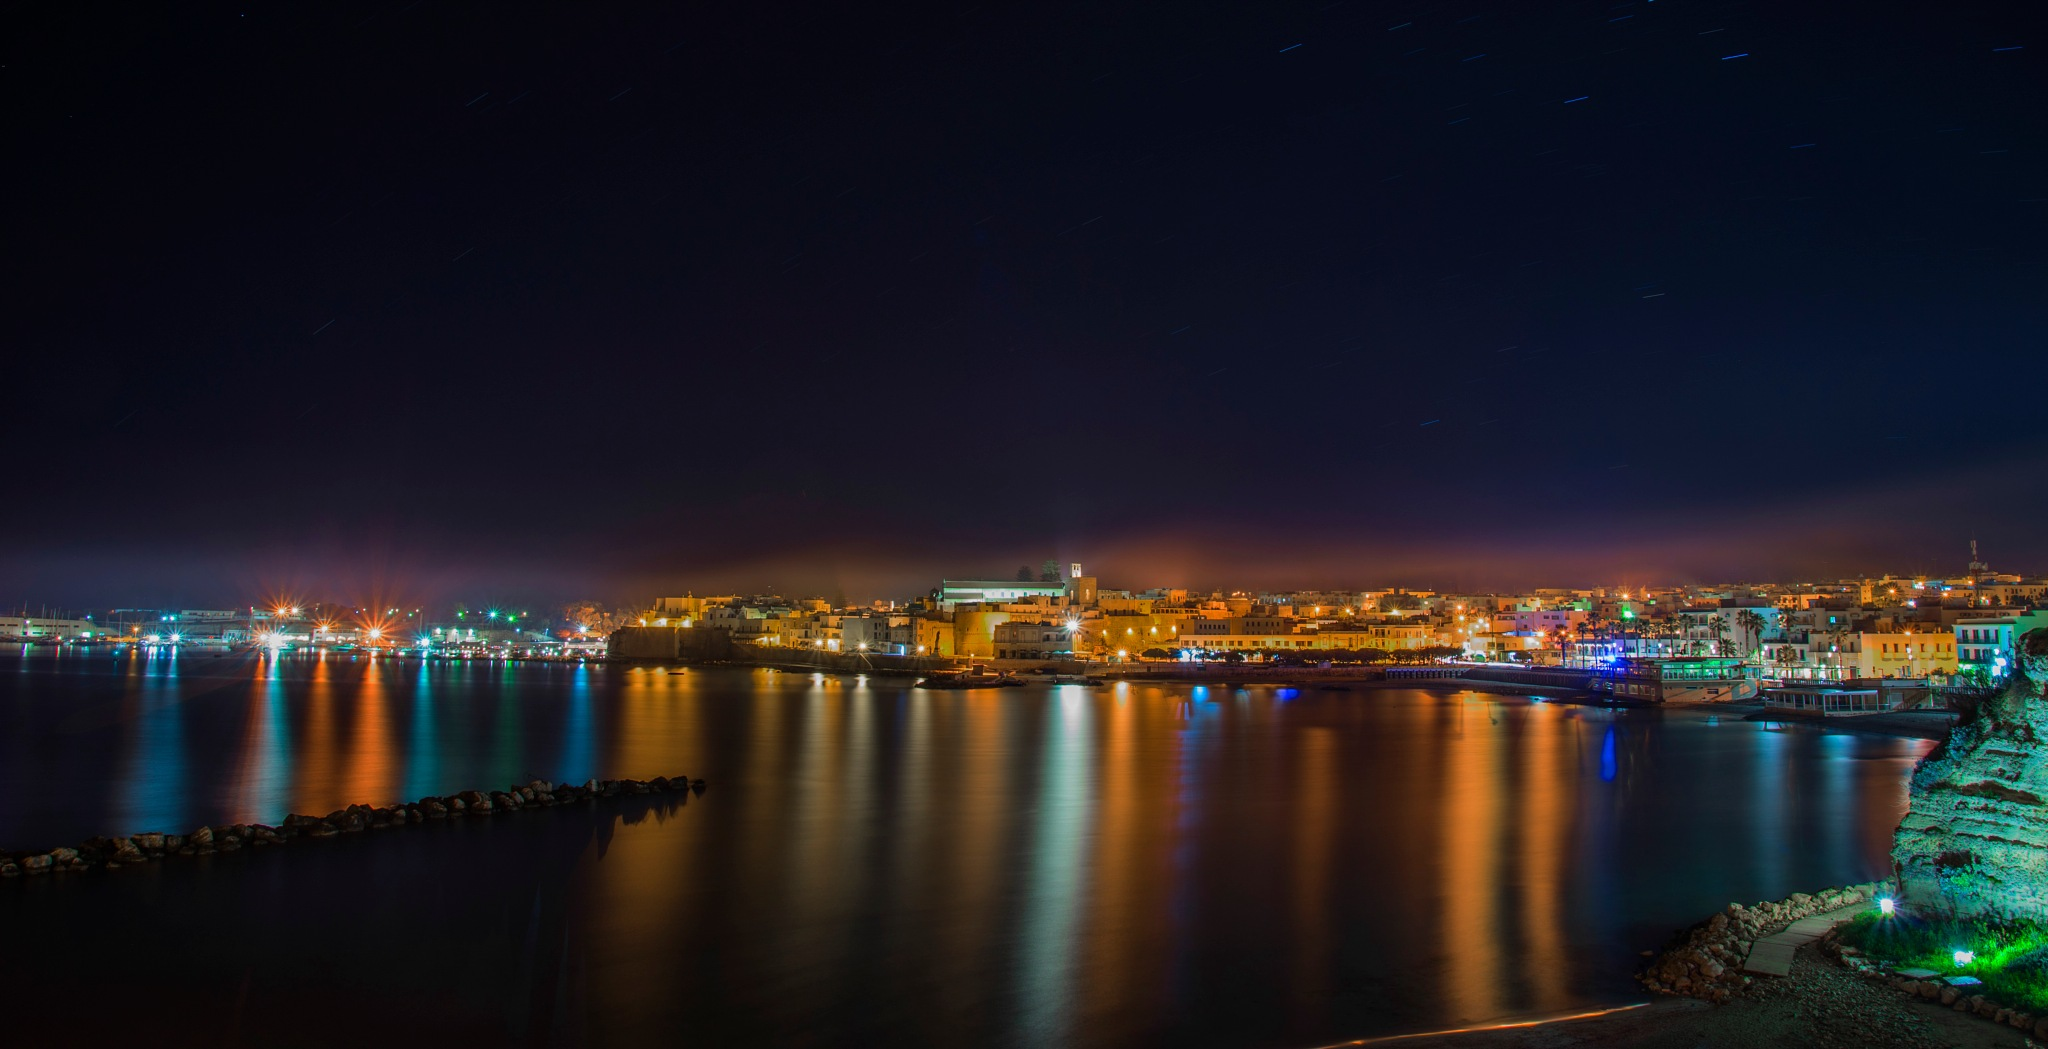 Otranto by Night by NicoSebaste